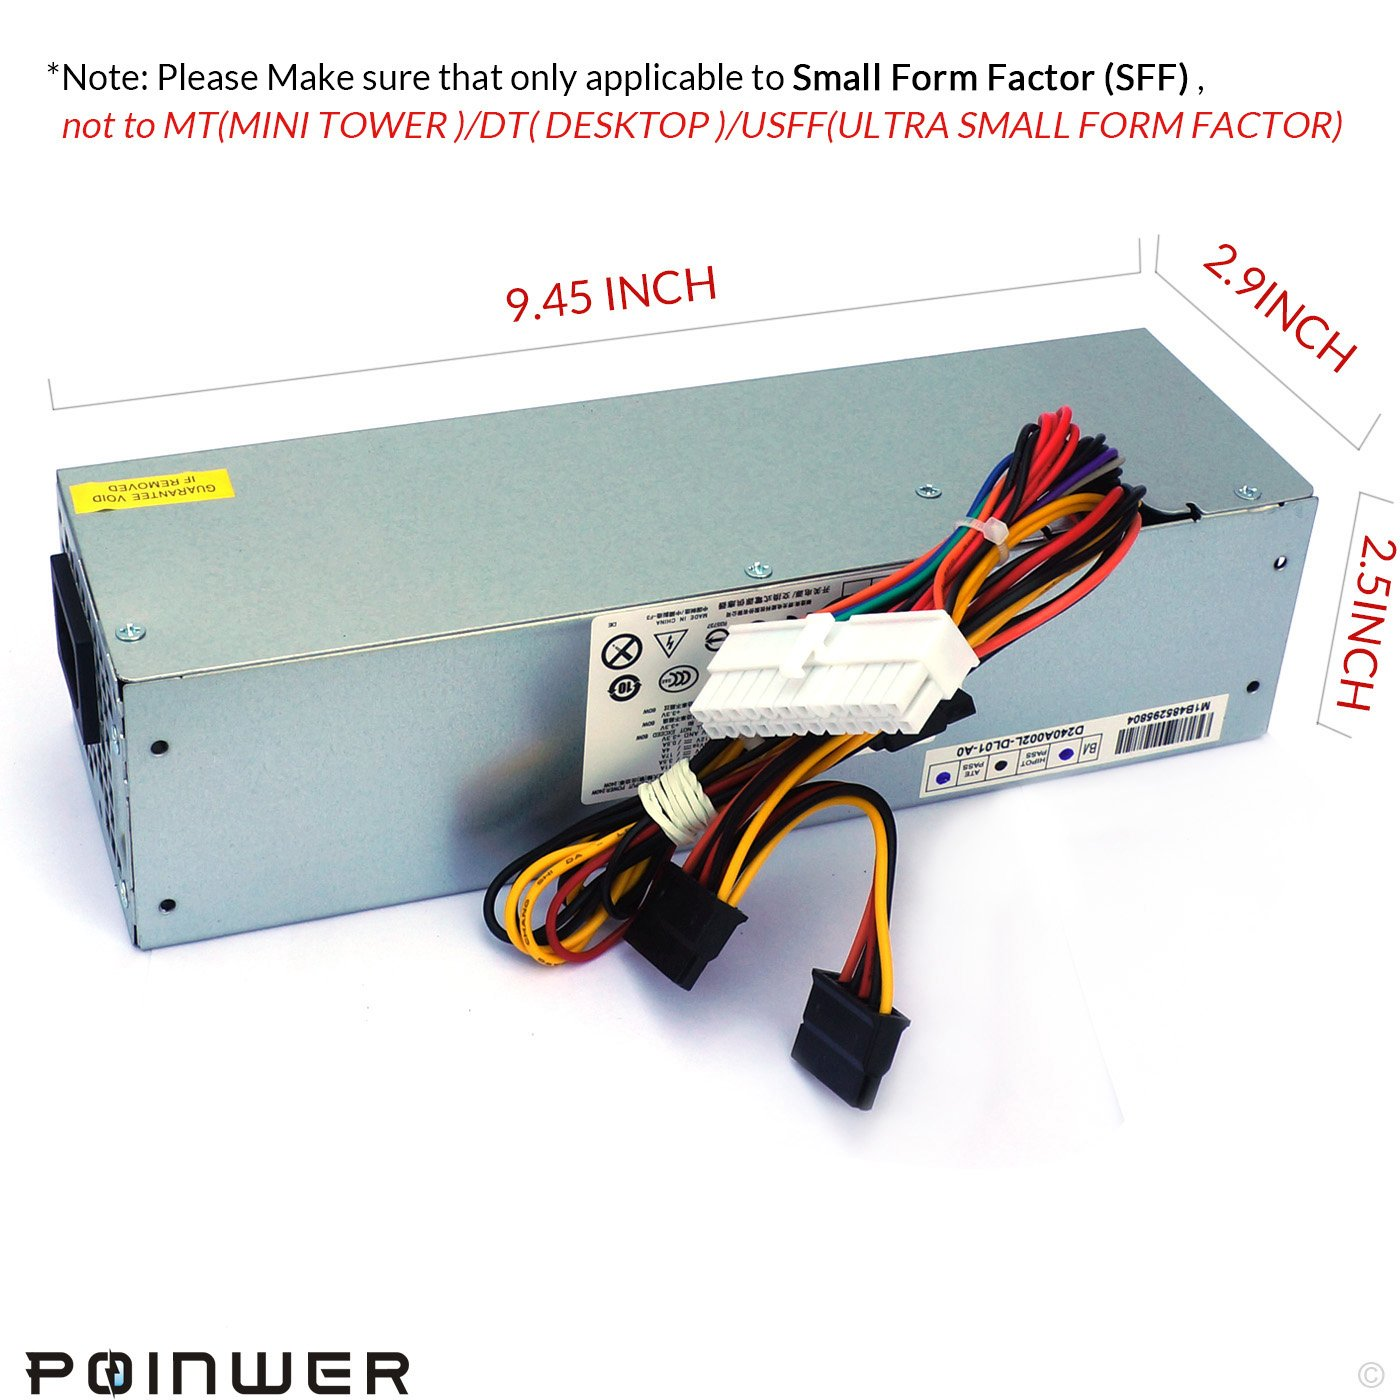 POINWER 3WN11 H240AS-00 709MT 240W Optiplex 7010 SFF Power Supply For Dell Optiplex 390 790 990 3010 9010 Small Form Factor Systems CCCVC 3RK5T 2TXYM F79TD L240AS-00 H240ES-00 D240ES-00 AC240AS-00 by POINWER (Image #2)